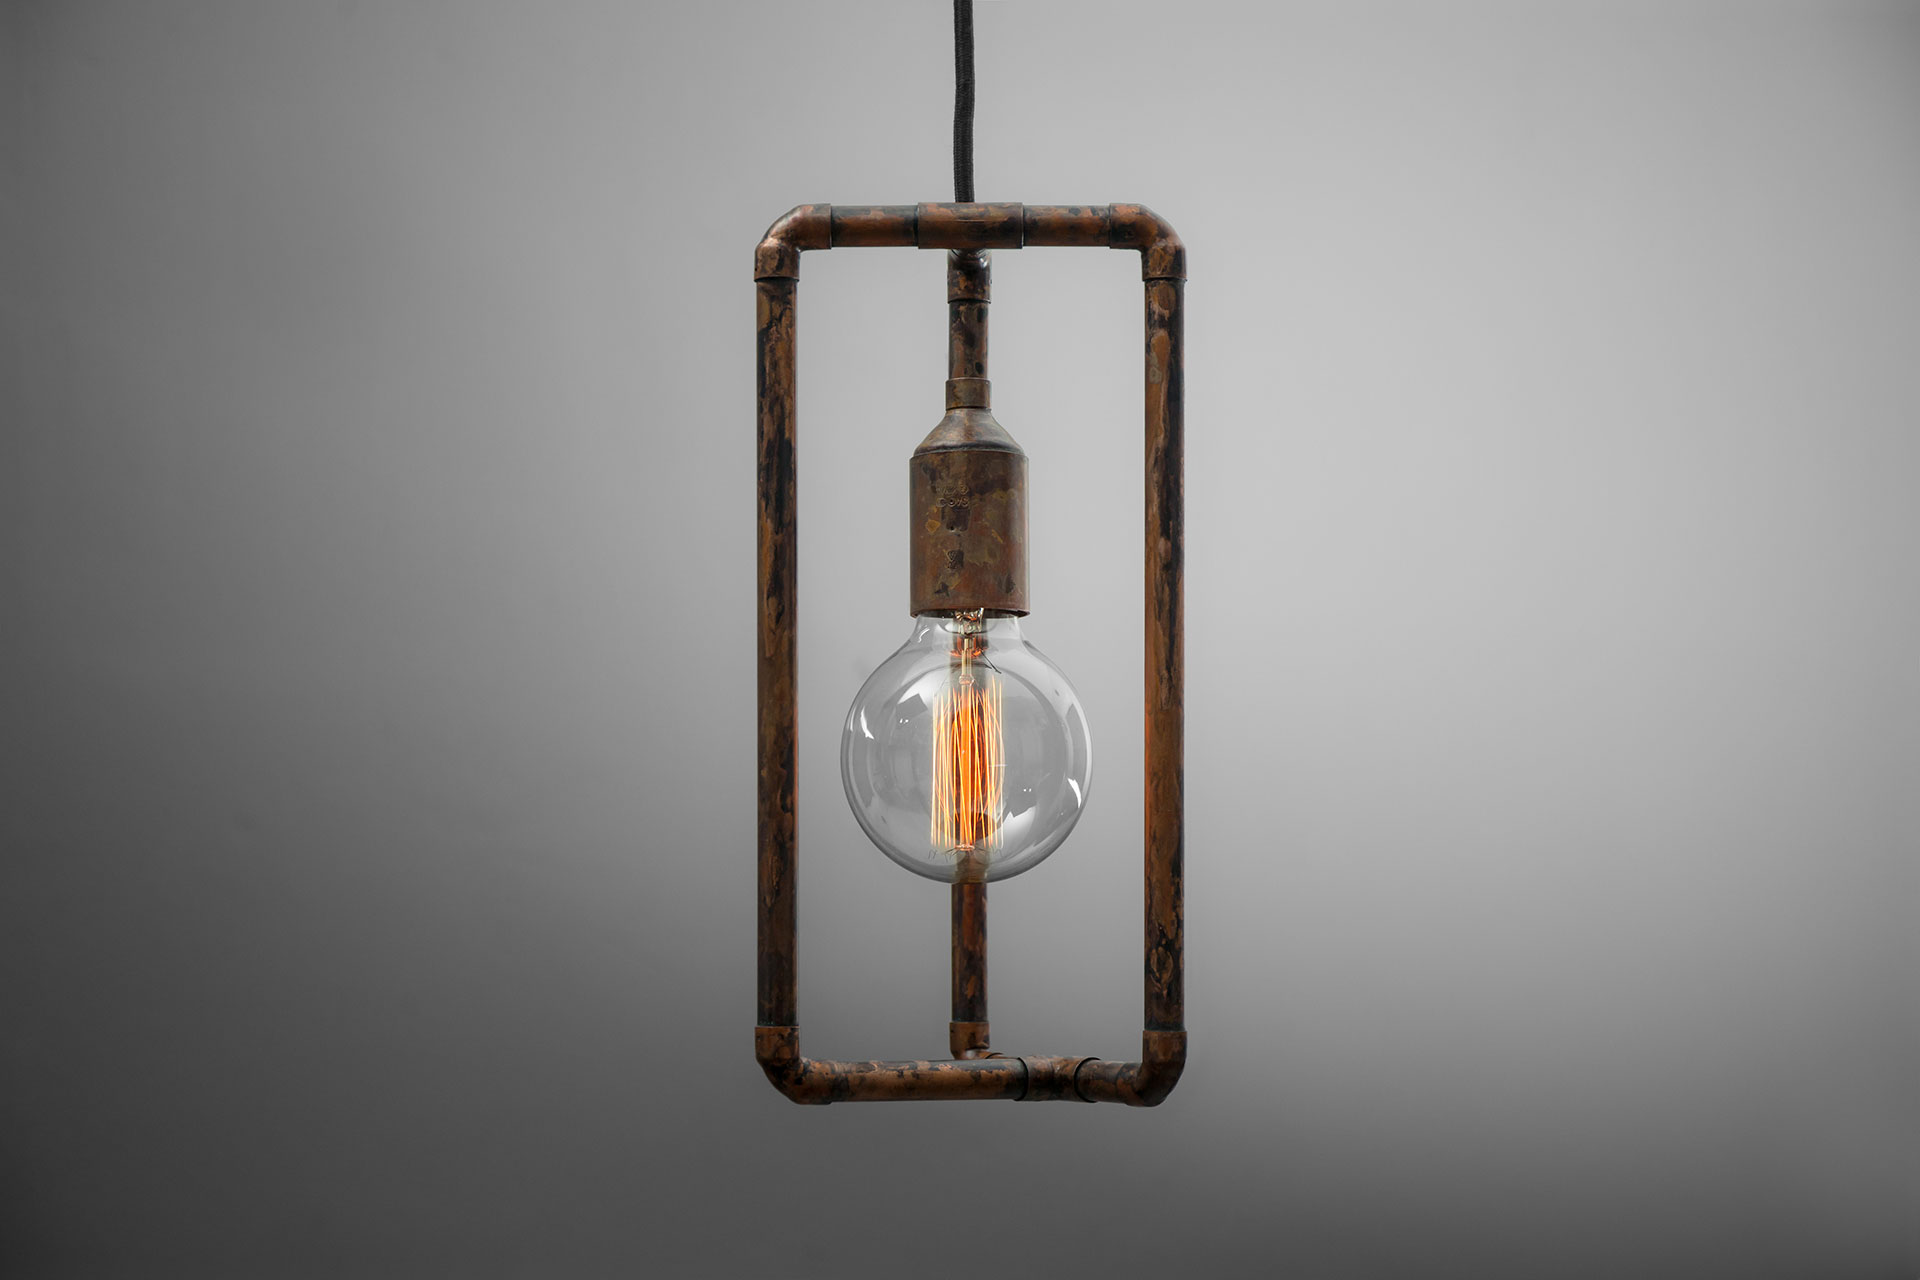 Rusty pendant lamp with vintage Edison bulb inspired by industrial design